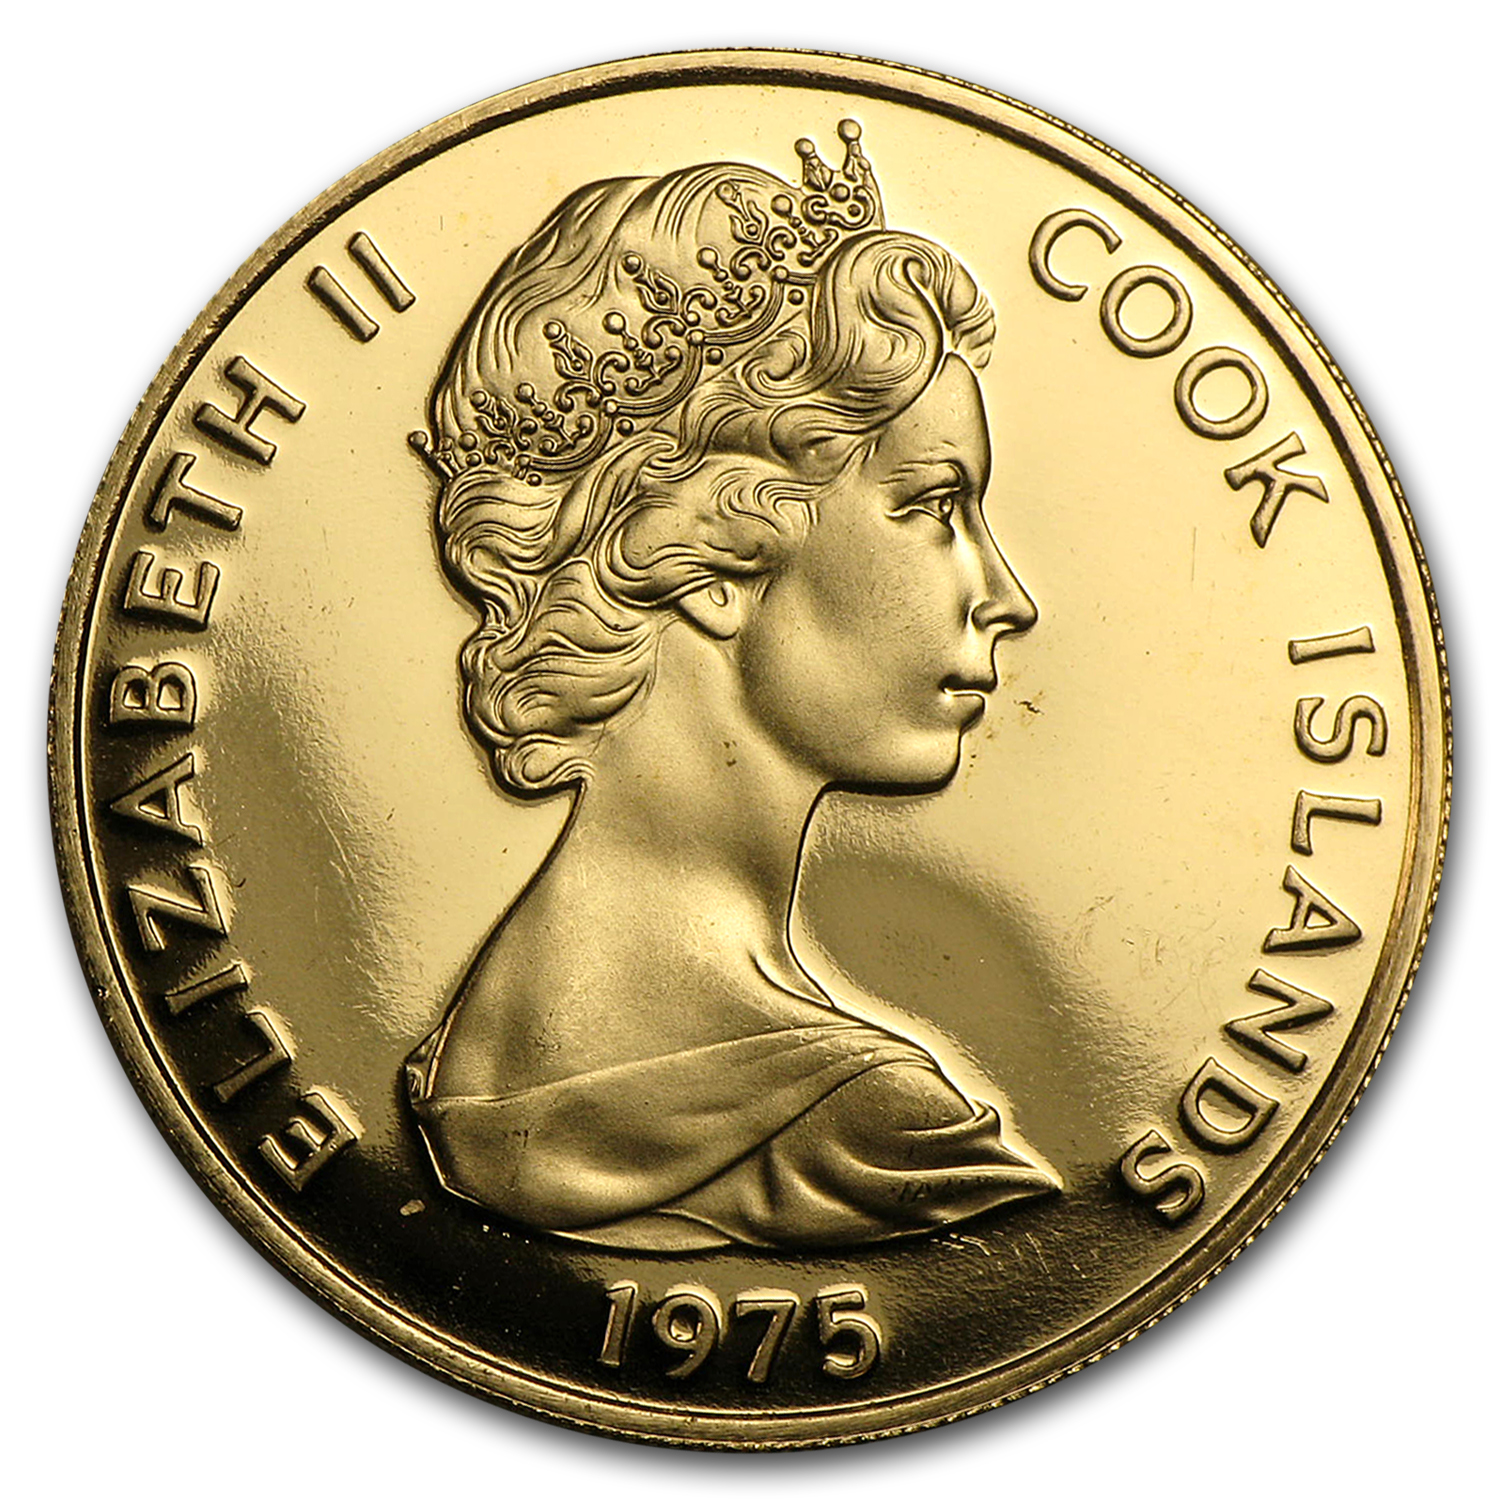 1975 Cook Islands Gold $100 James Cook Proof